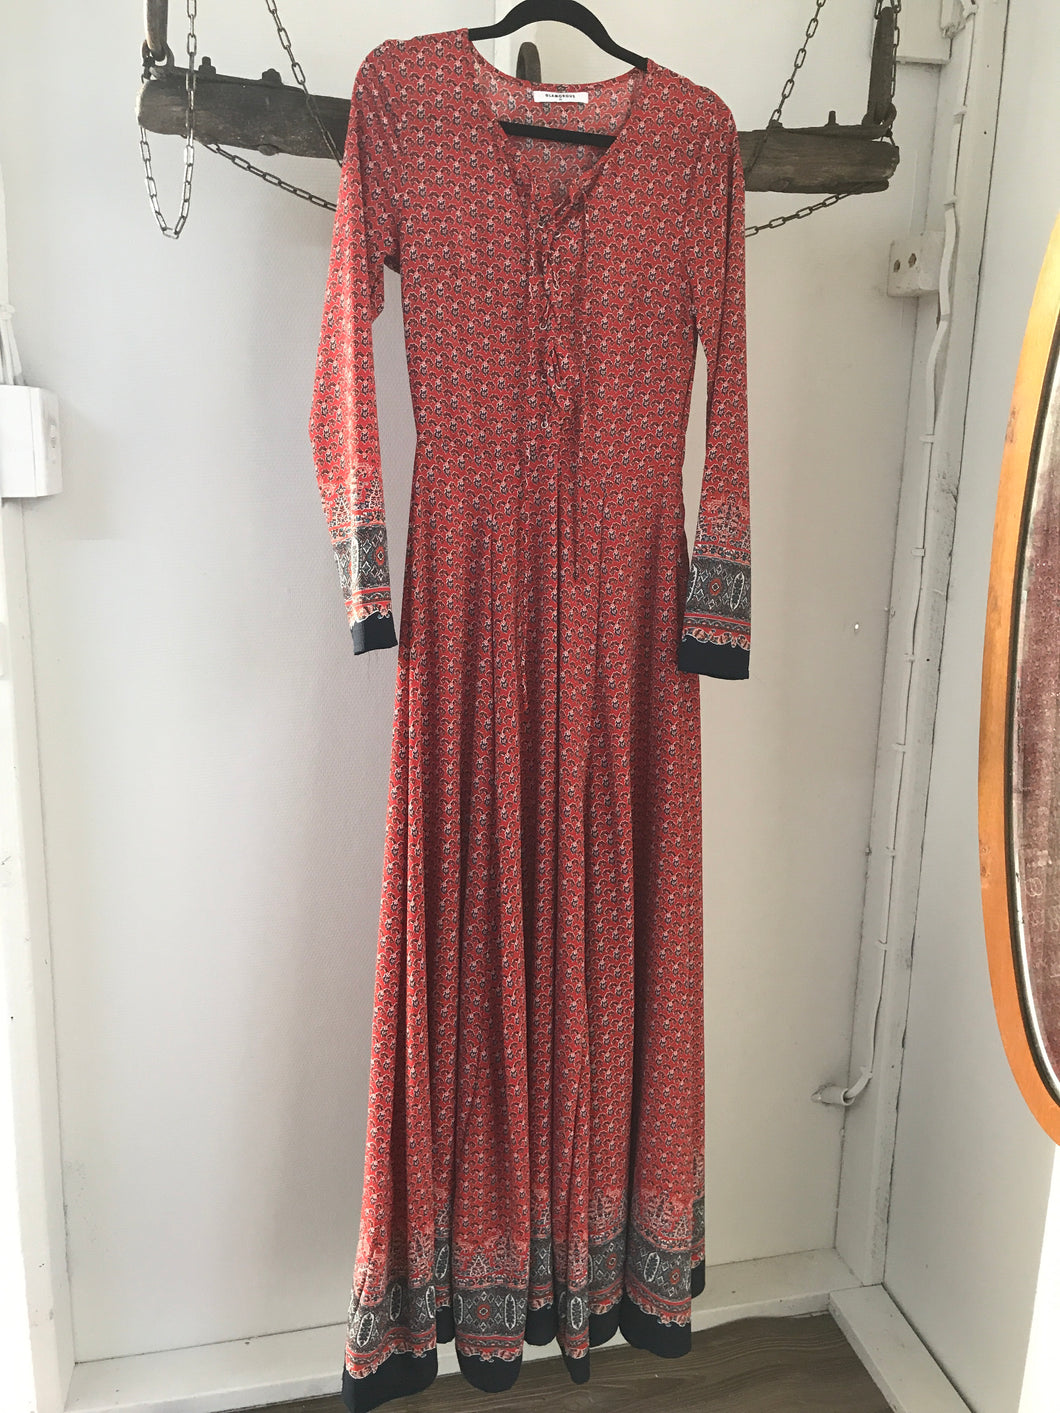 Glamorous Maxi, Red And Blue Dress (Kate Middleton) Size 8